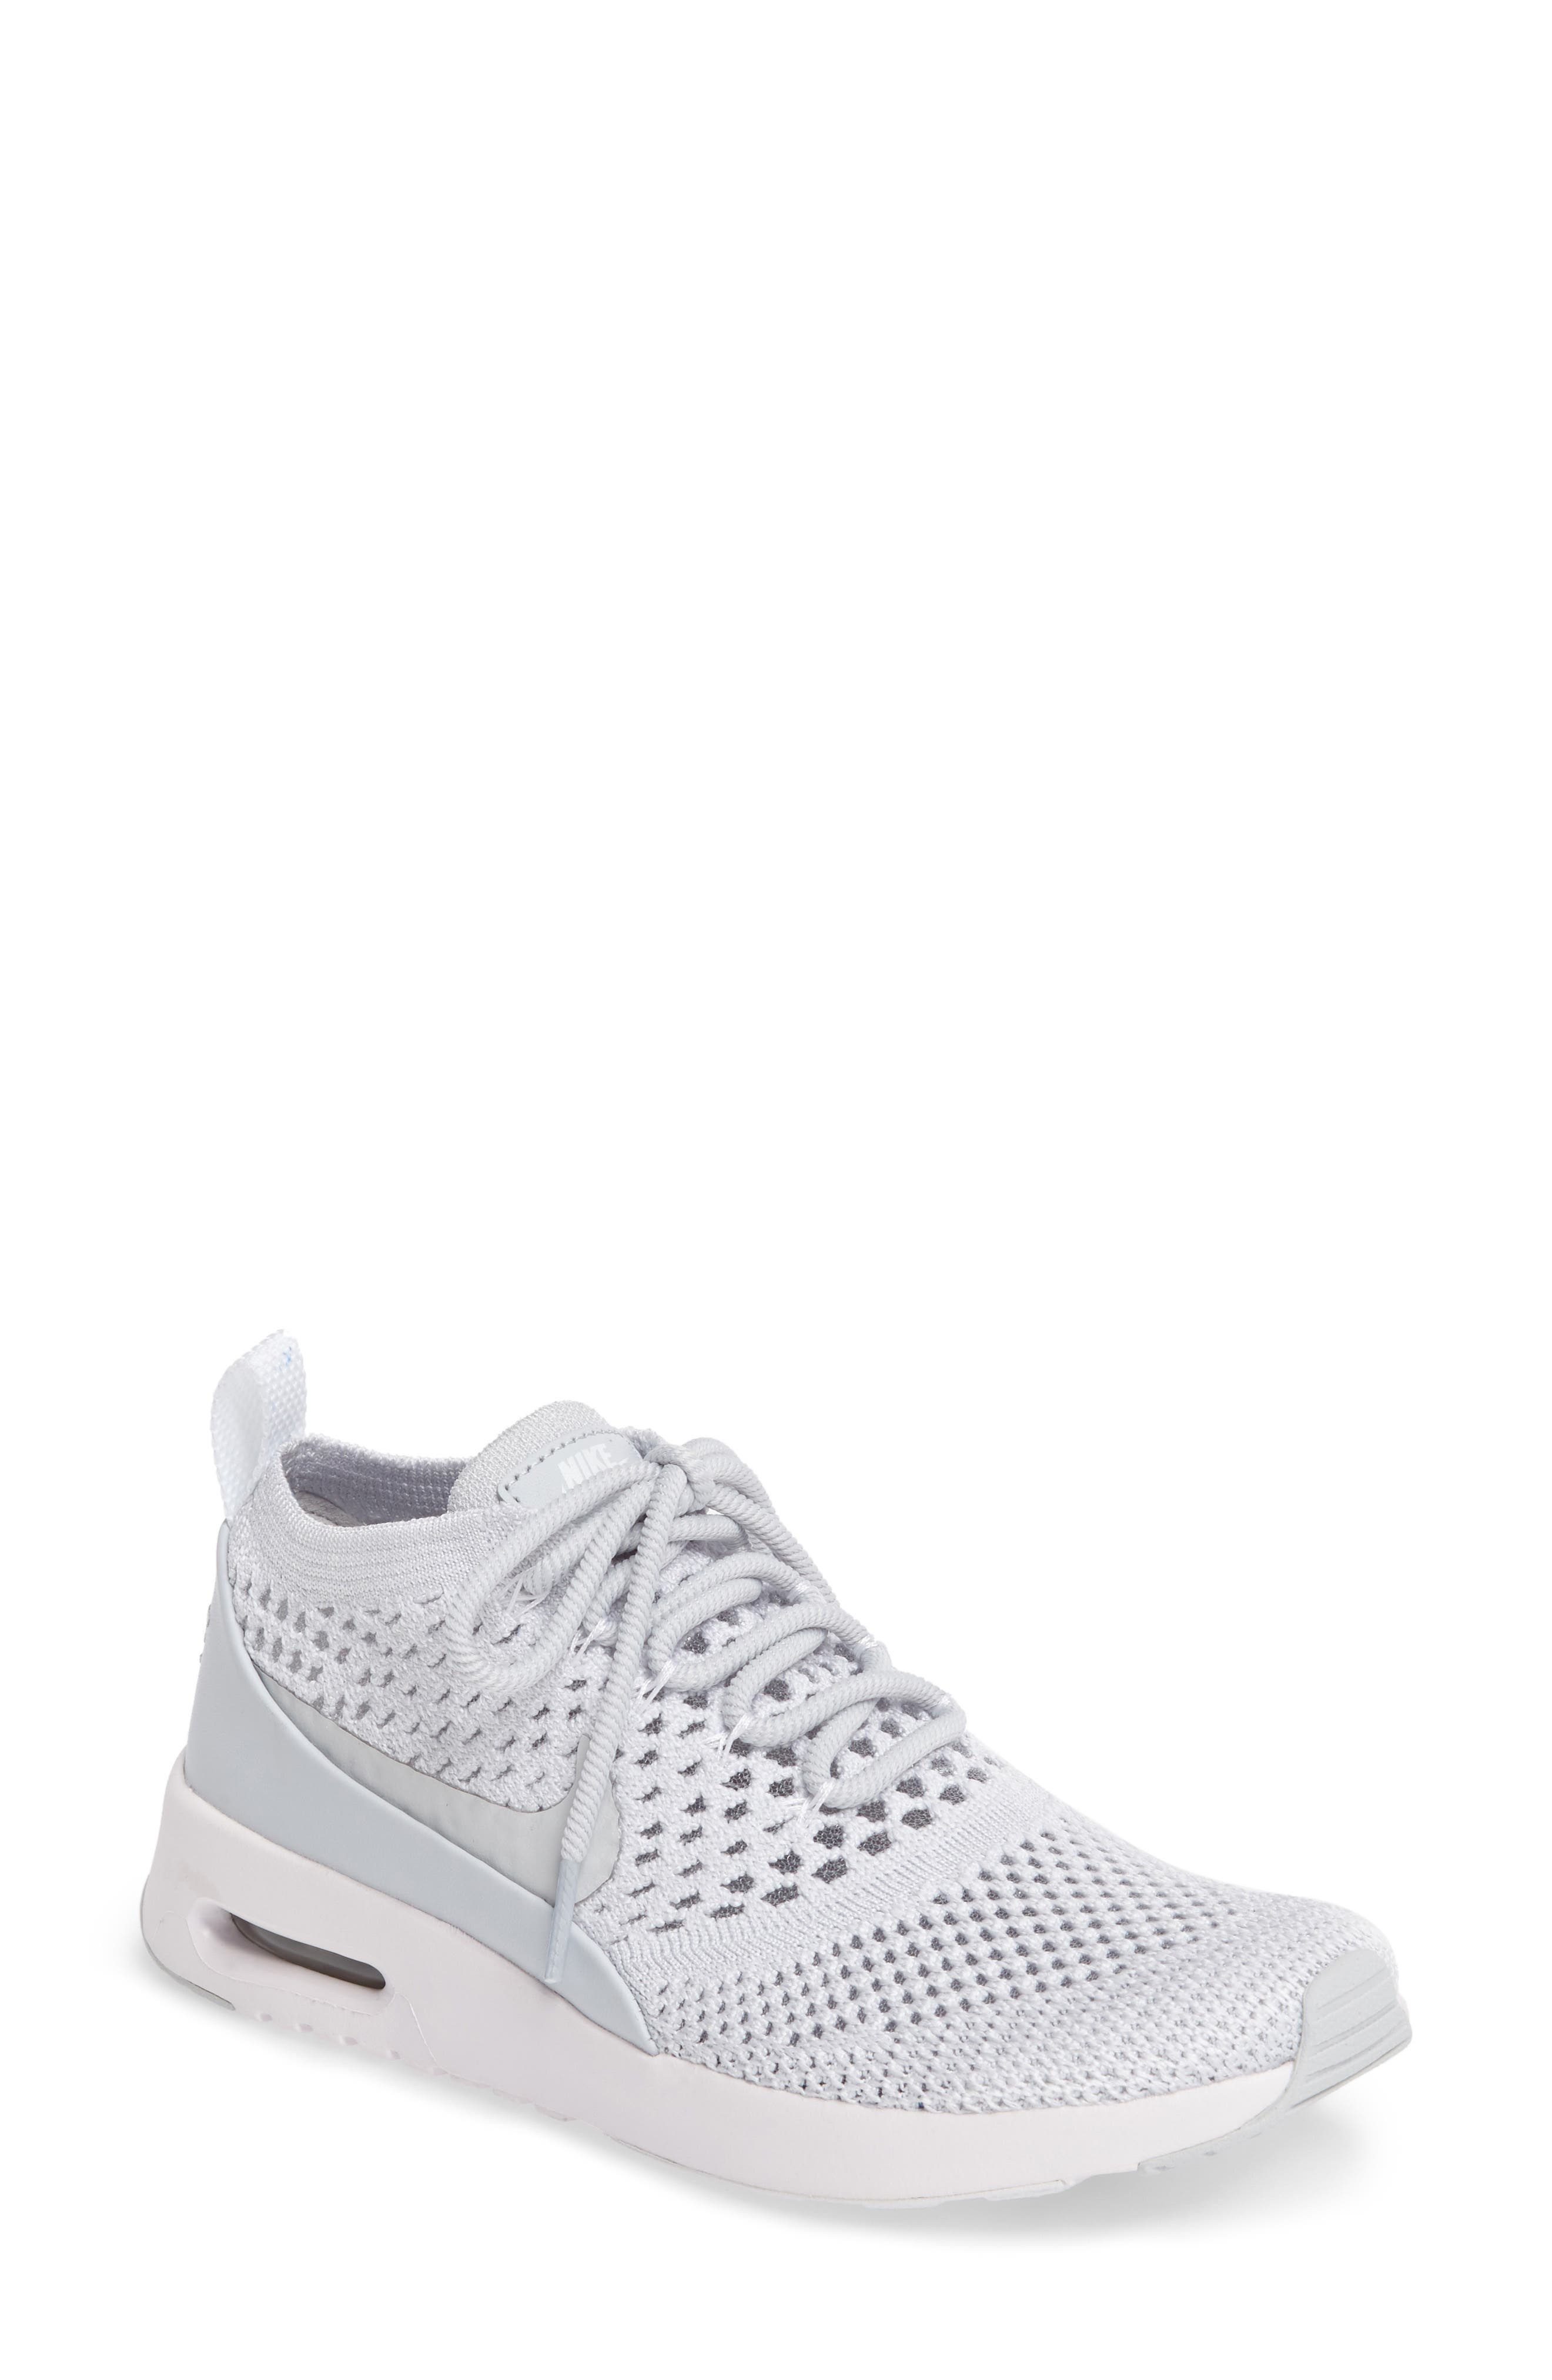 Air Max Thea Ultra Flyknit Sneaker,                         Main,                         color, Pure Platinum/ White